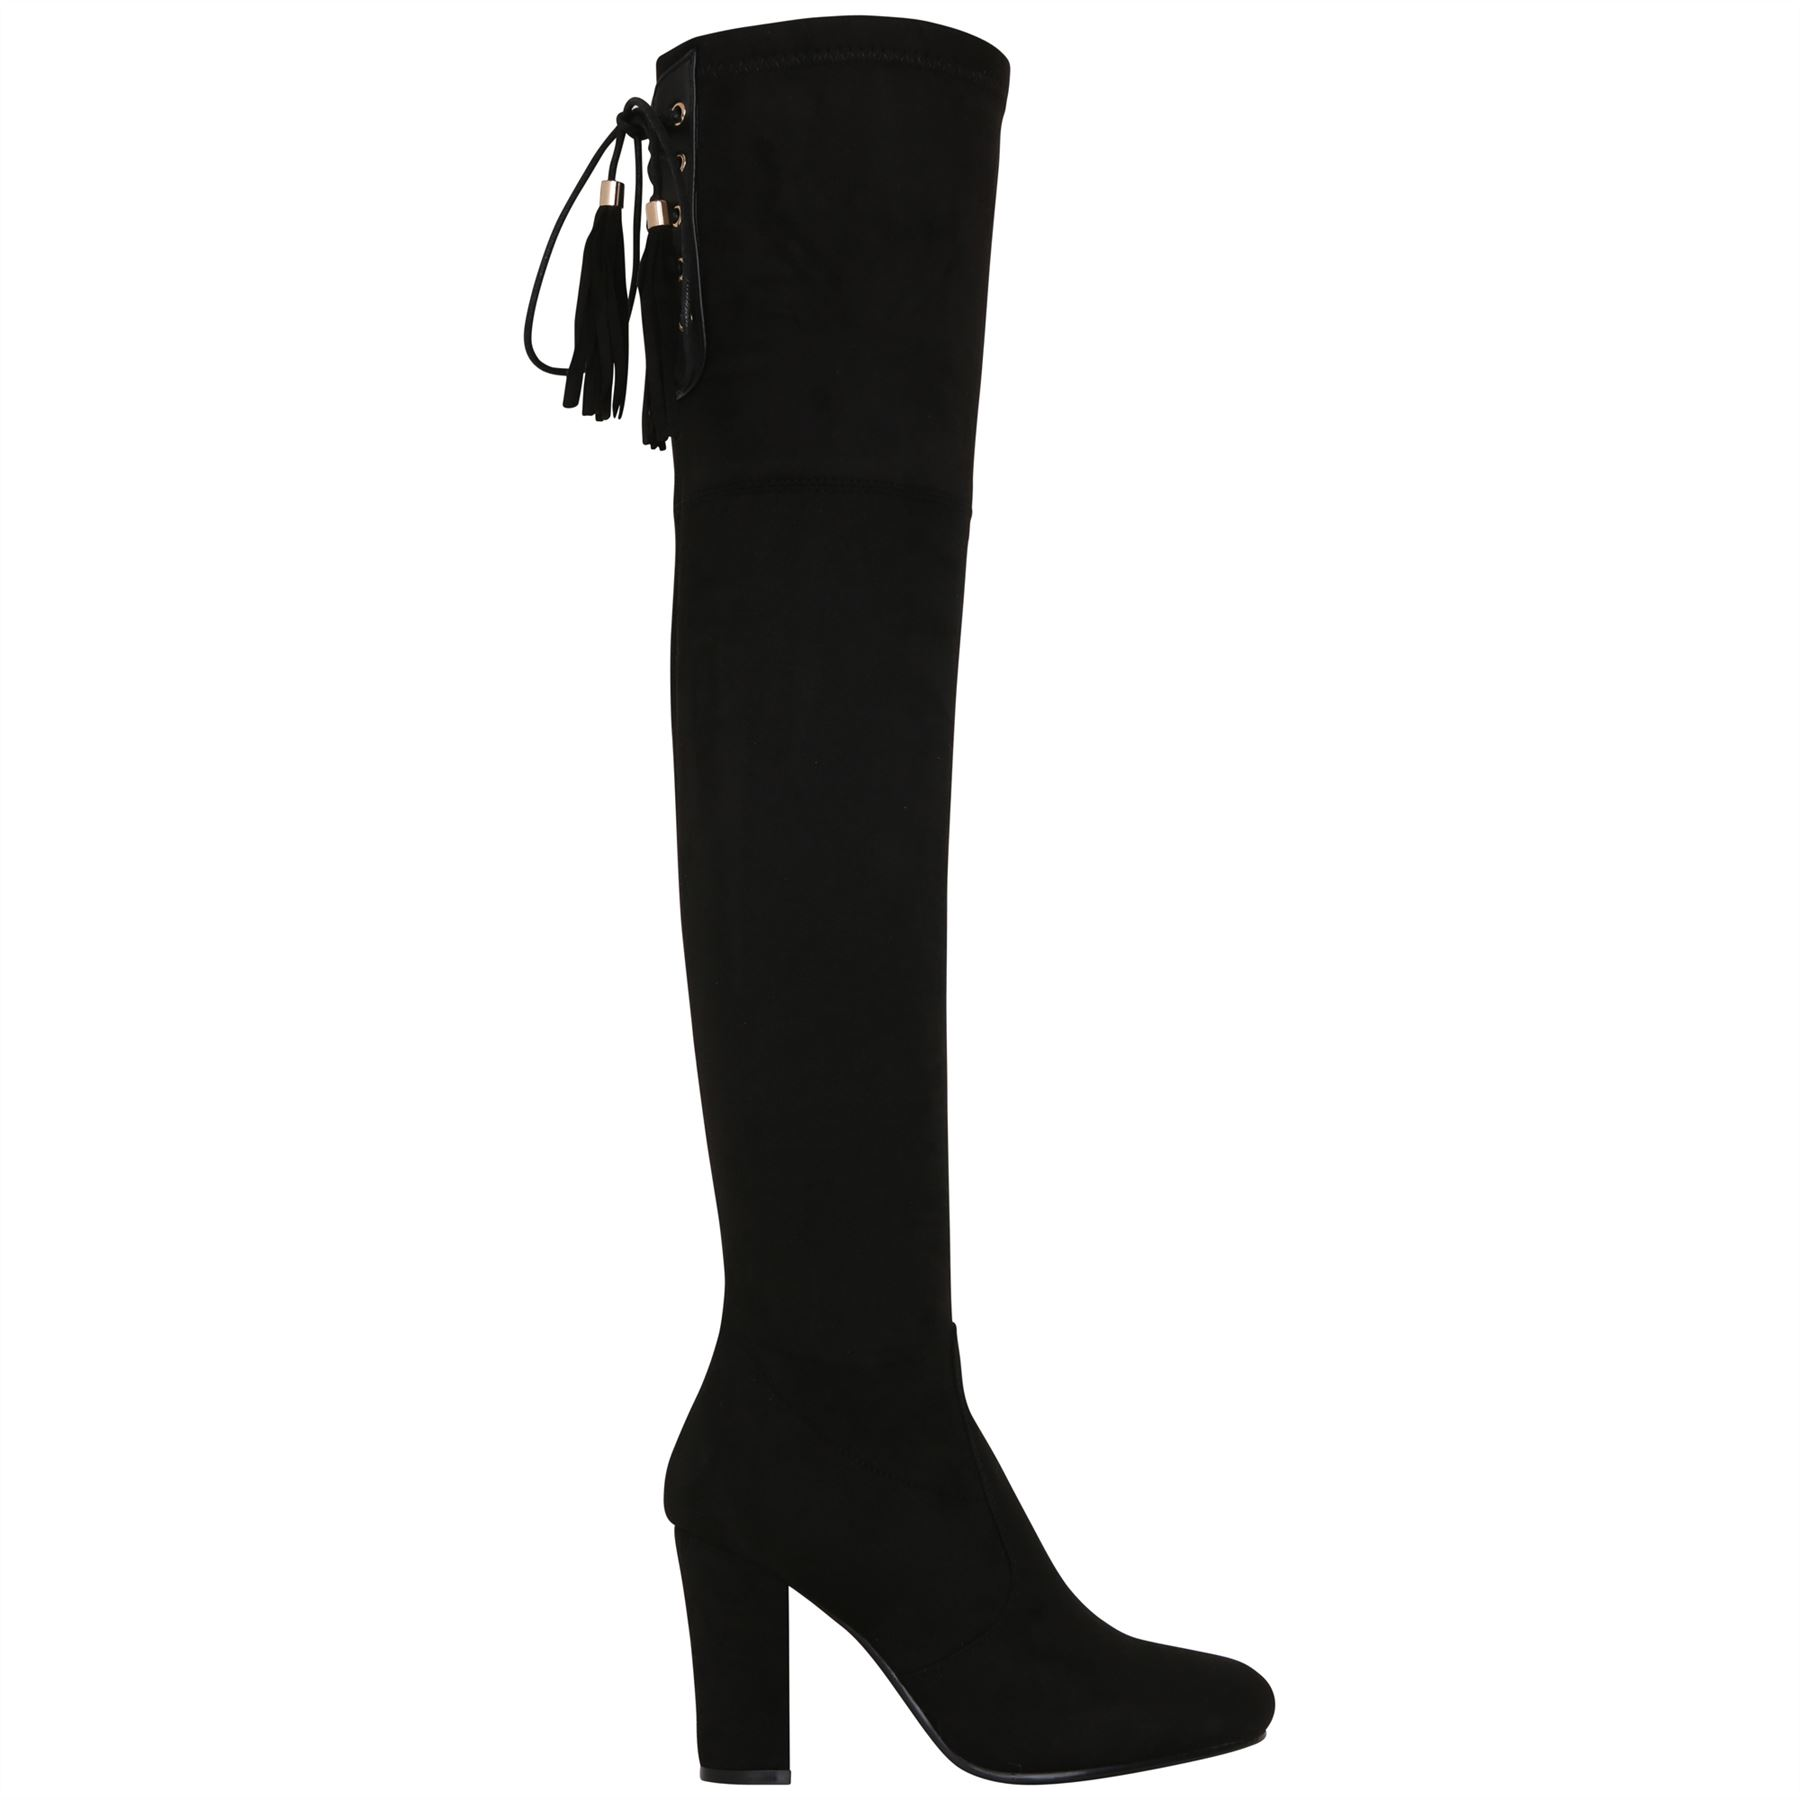 Womens-Over-Knee-High-Boots-Ladies-Low-Block-Heel-Riding-Stretch-Winter-Shoes miniatura 5